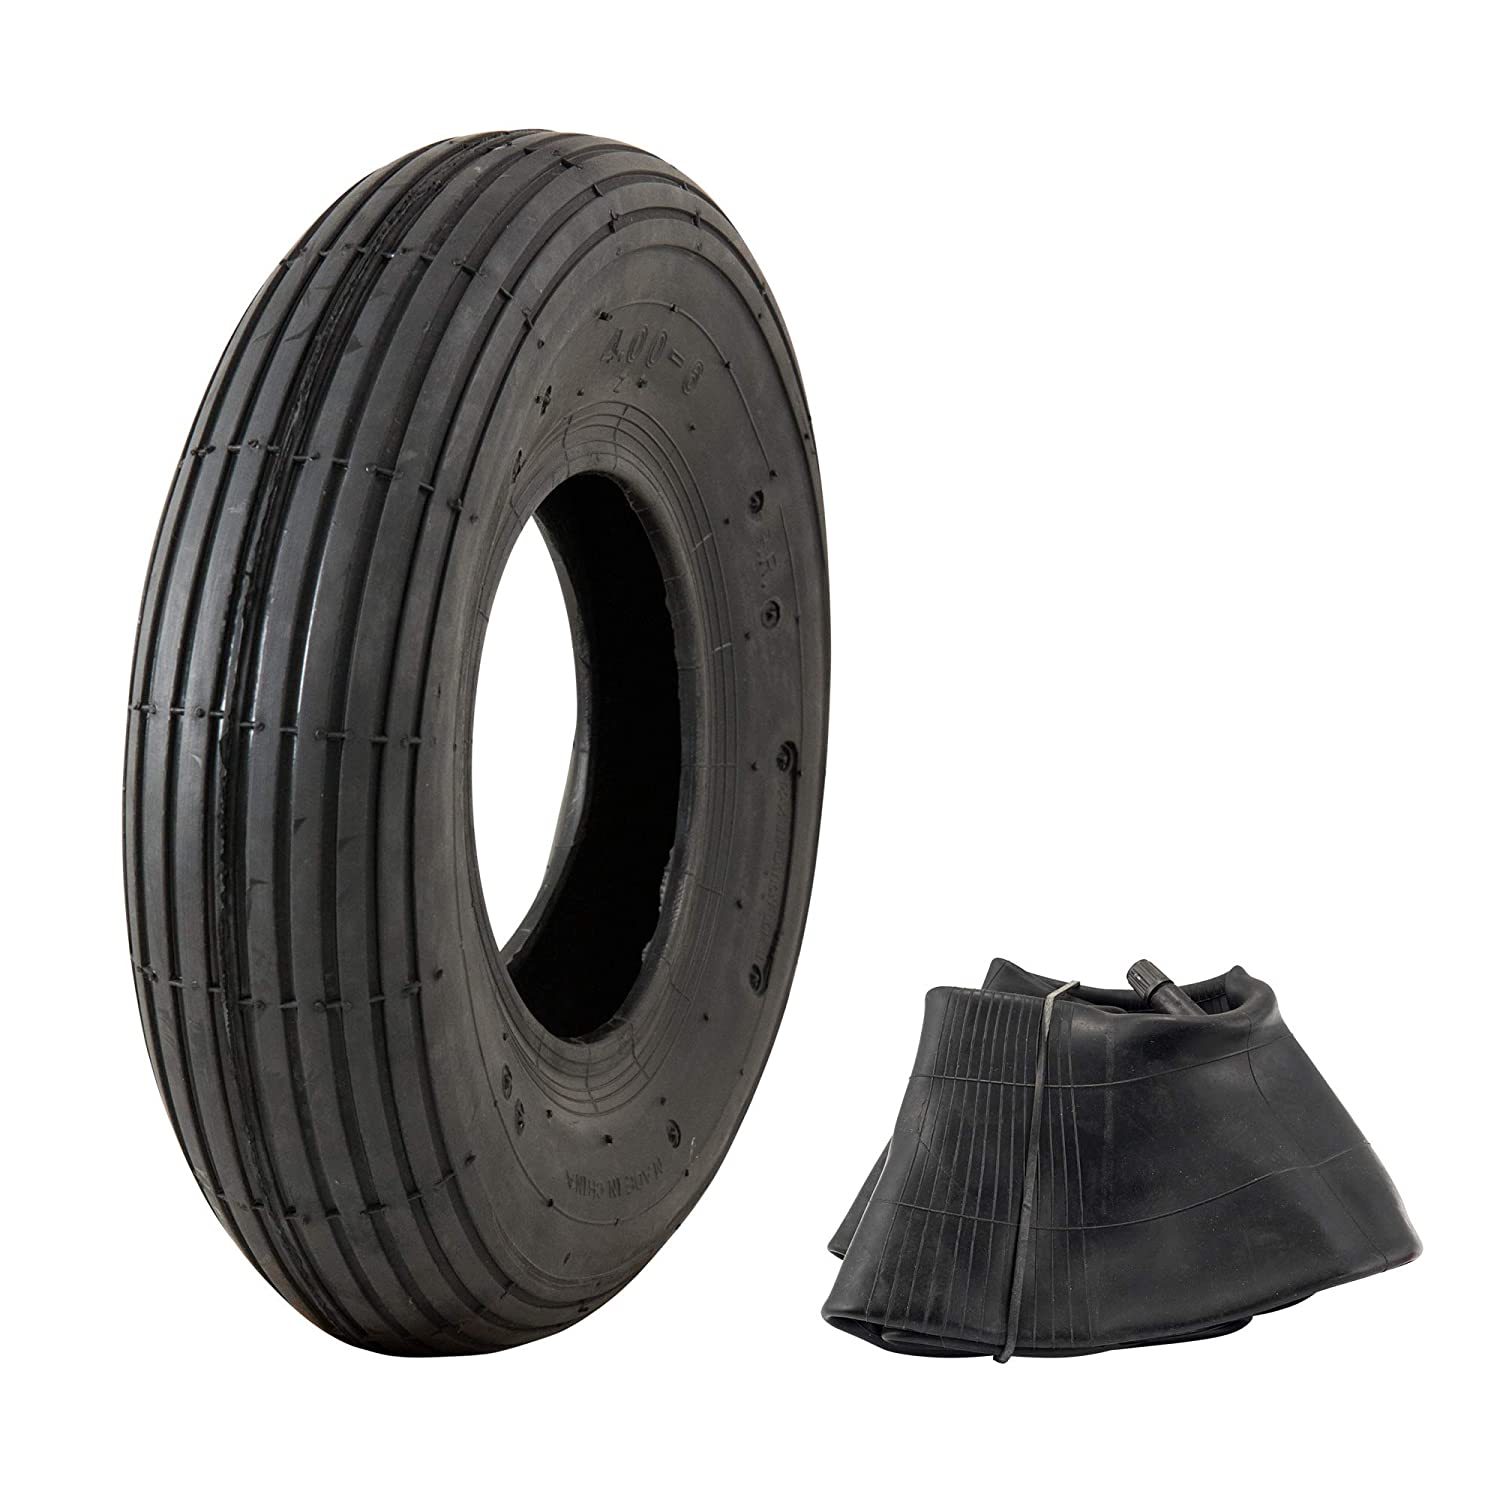 "Marathon 4.00-6"" Replacement Pneumatic Wheel Tire and Tube"